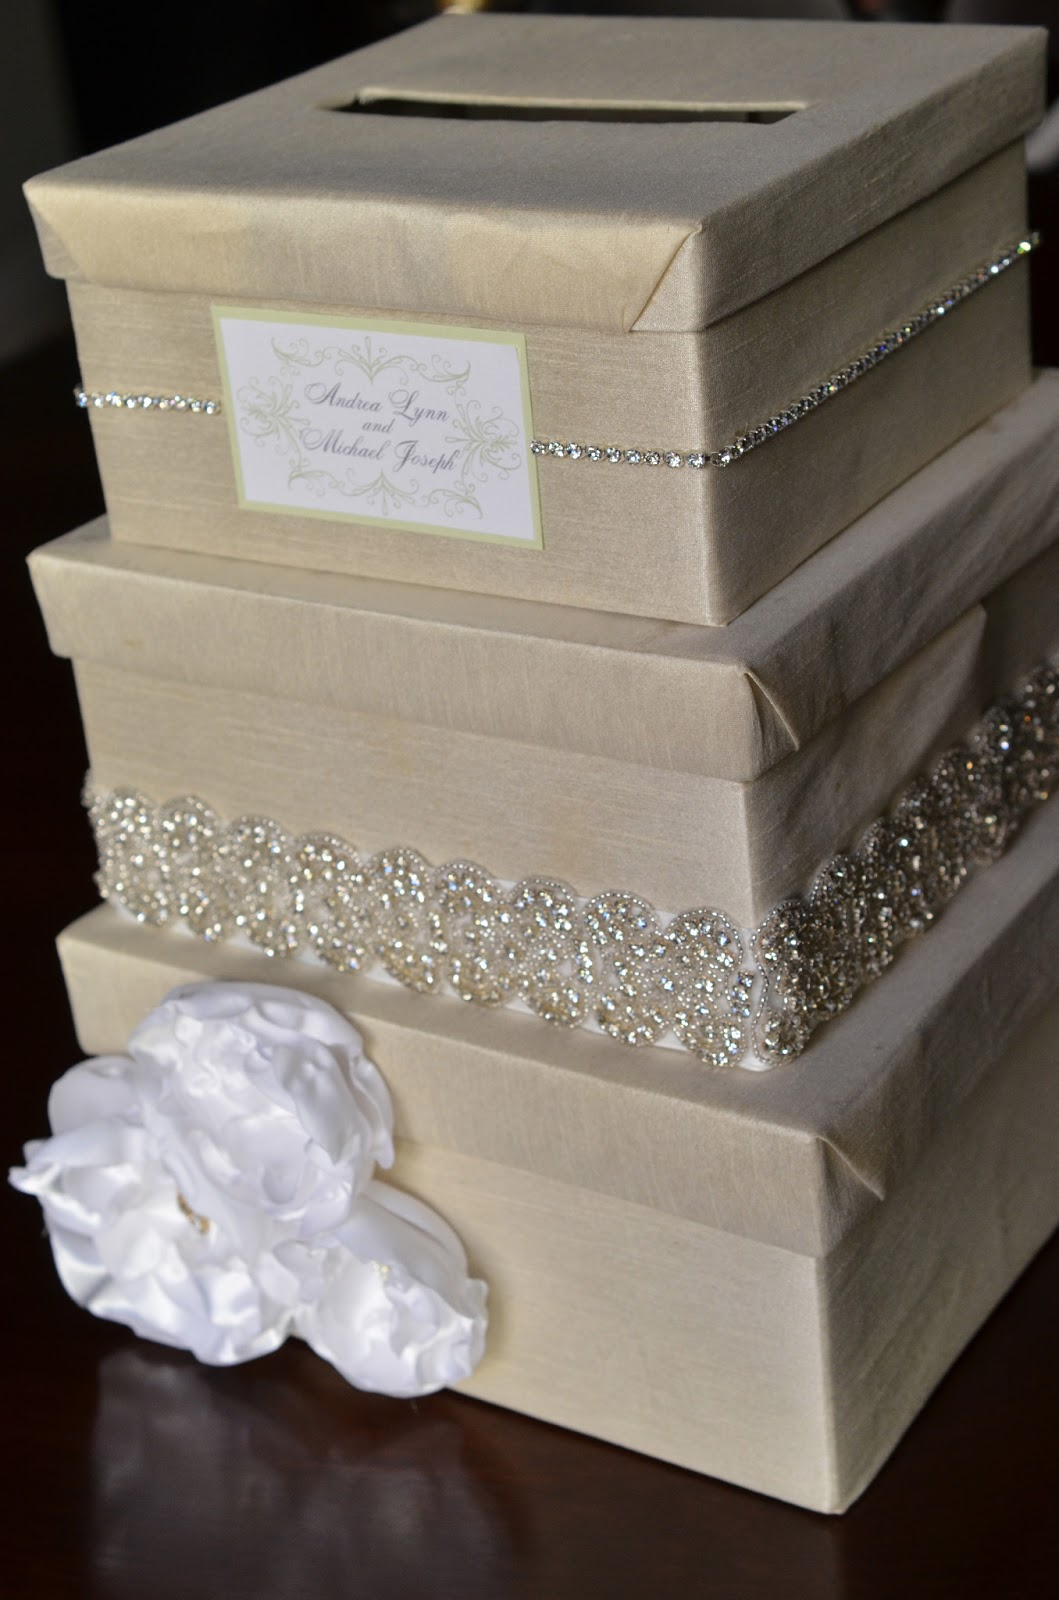 Wedding Gift Card Containers : DIY Wedding Card Box Tutorial - Andrea Lynn HANDMADE